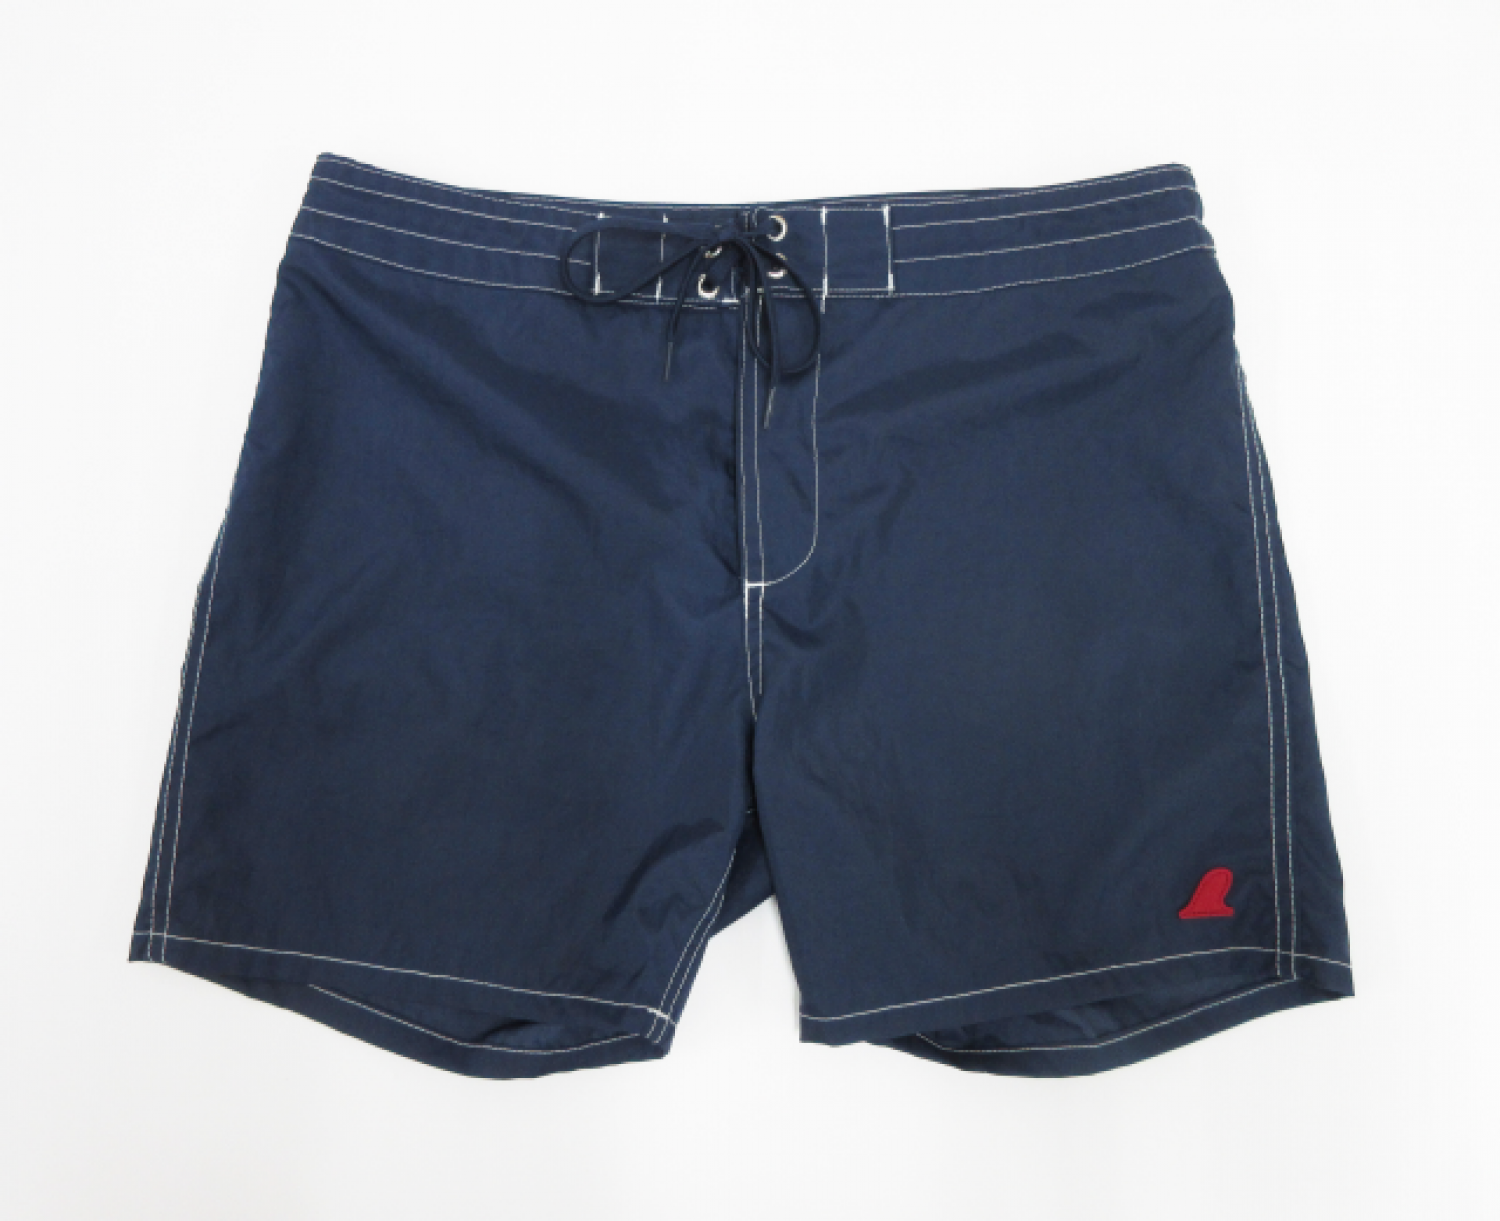 VOLN RED FIN BOARDSHORTS NAVY